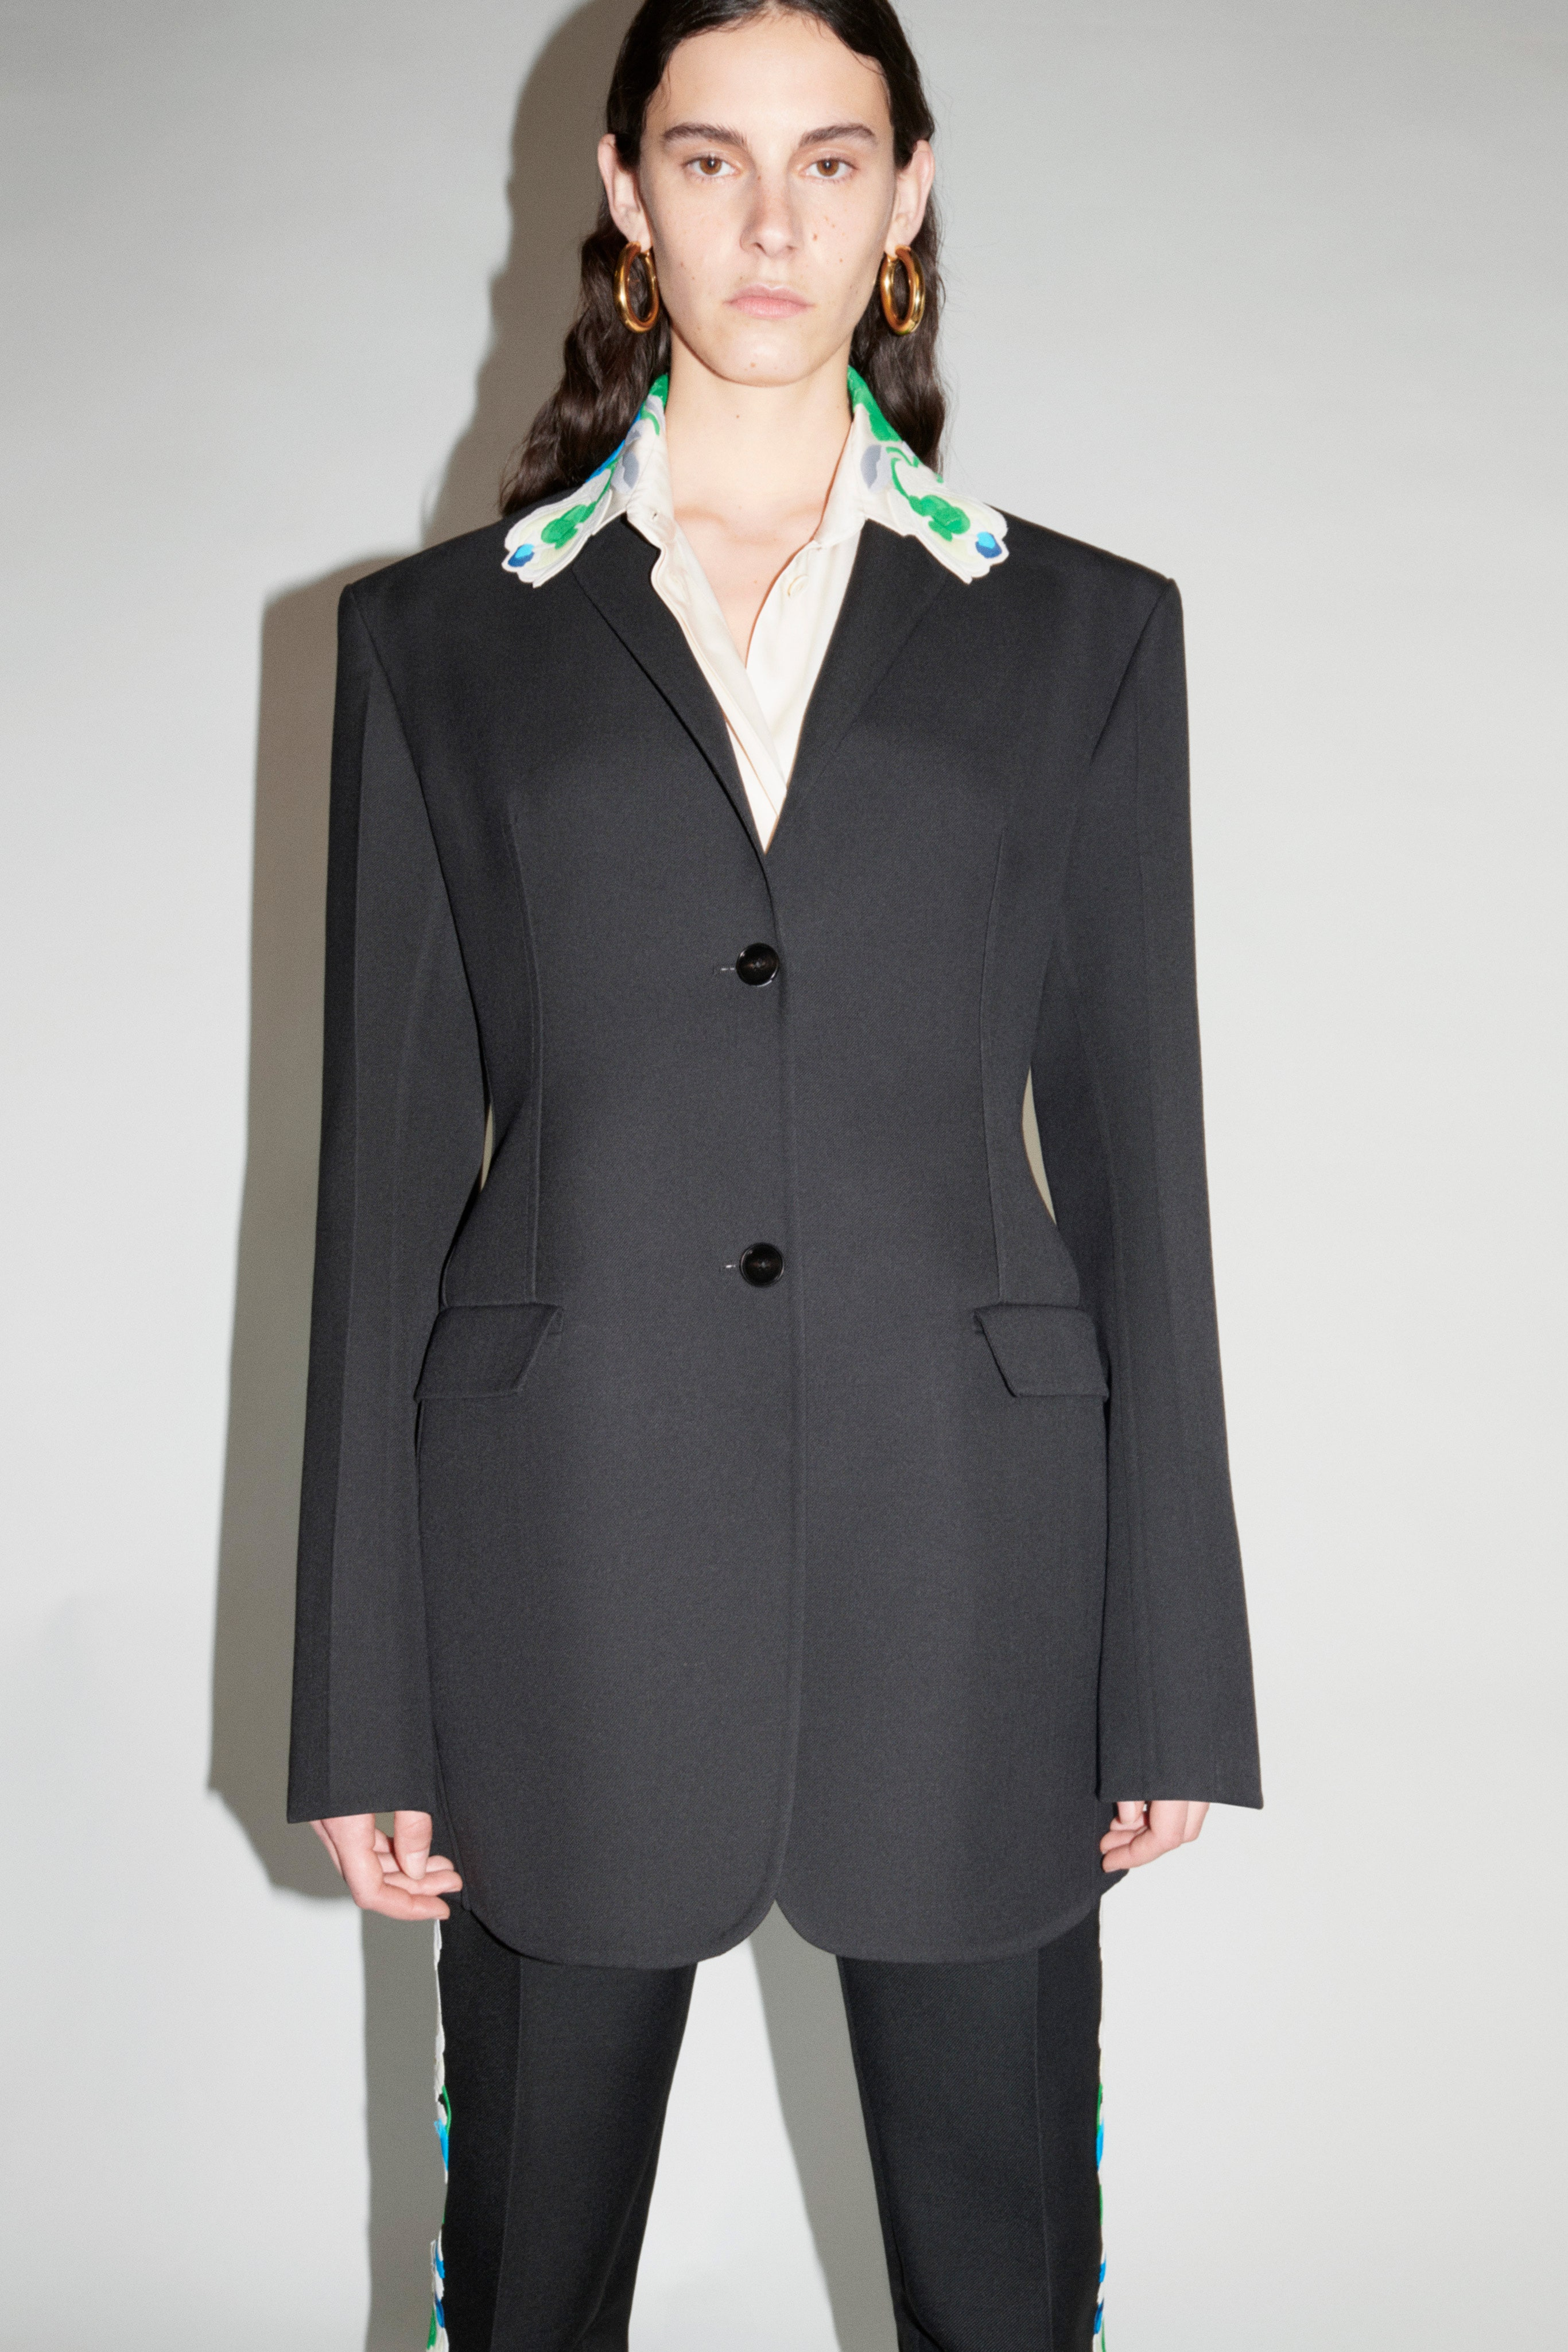 For walks in the fresh air: A seasonal collection of Jil Sander arrived at Asthik (photo 13)